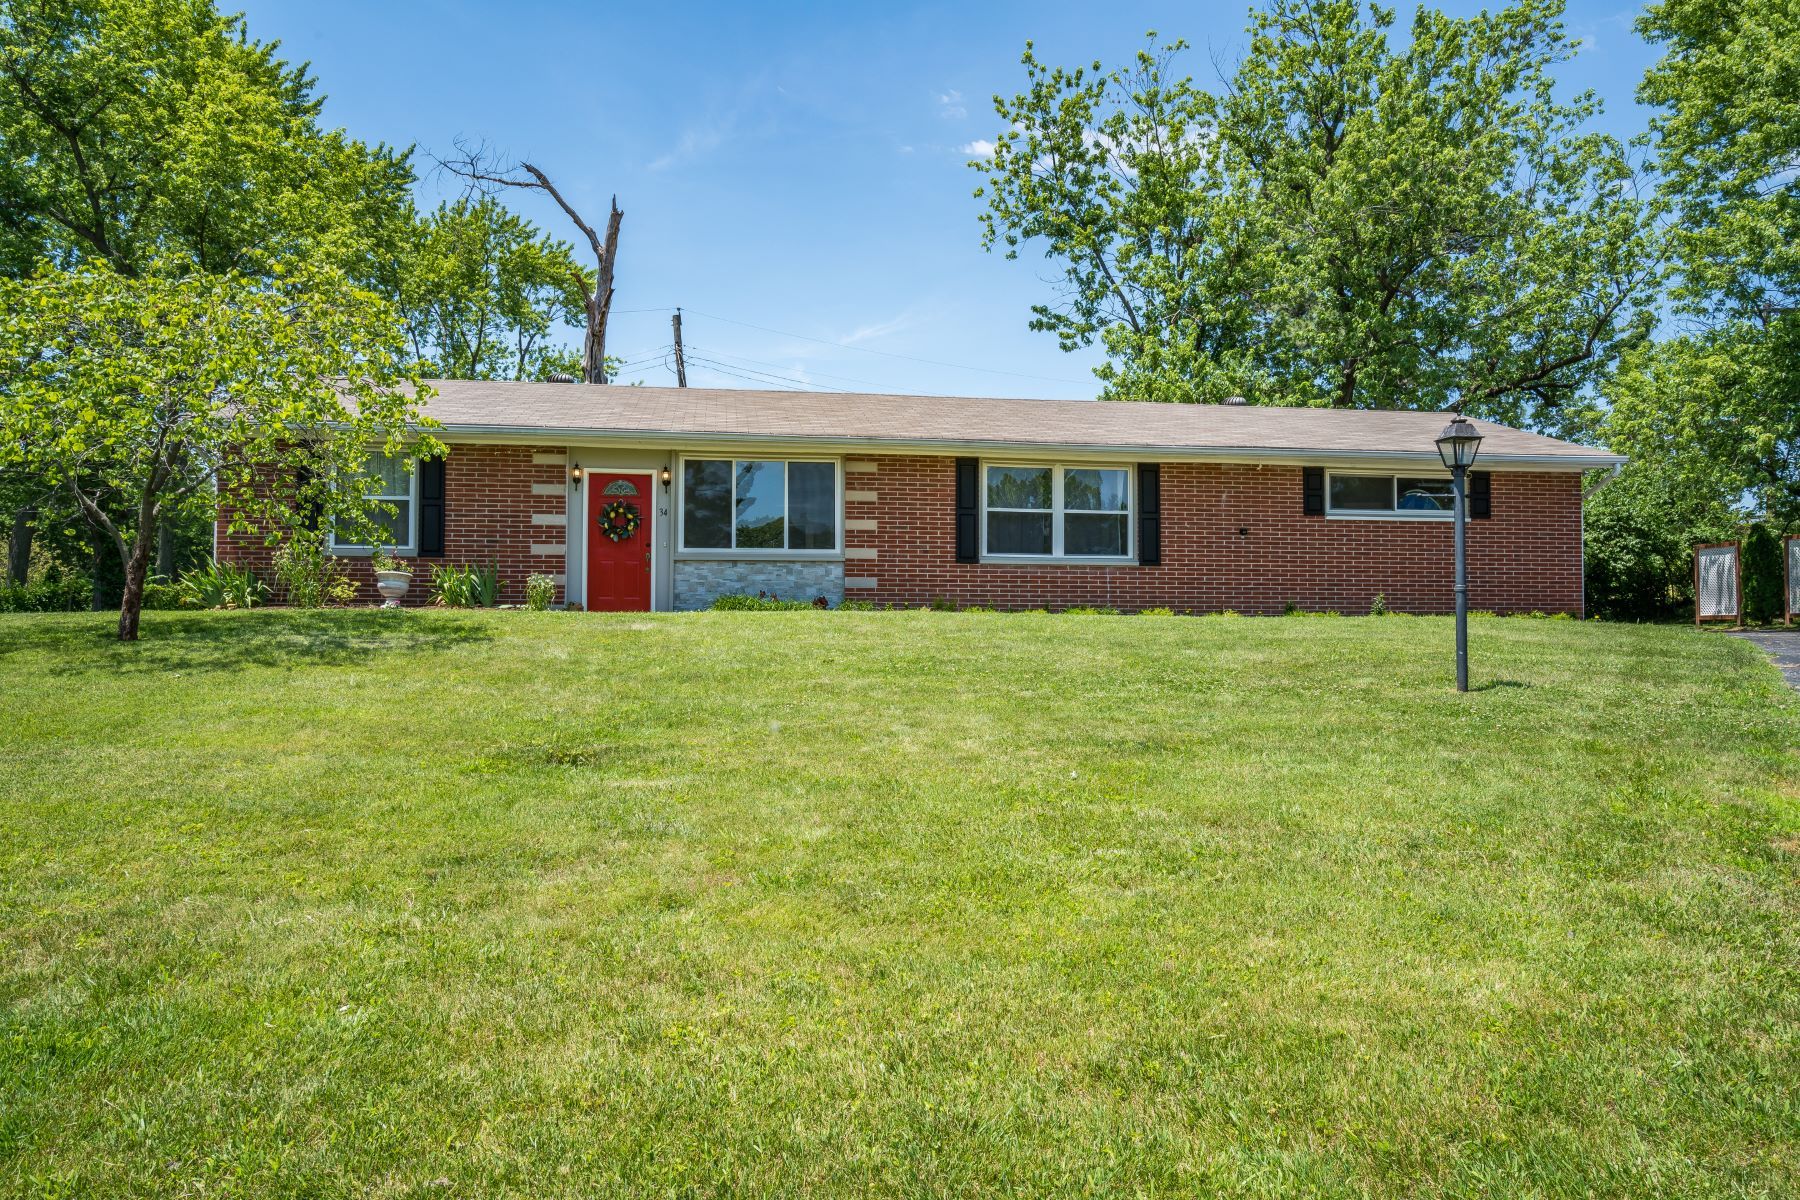 Single Family Homes for Sale at Beautifully Renovated Brick Ranch in Ladue 34 Crabapple Court St. Louis, Missouri 63132 United States